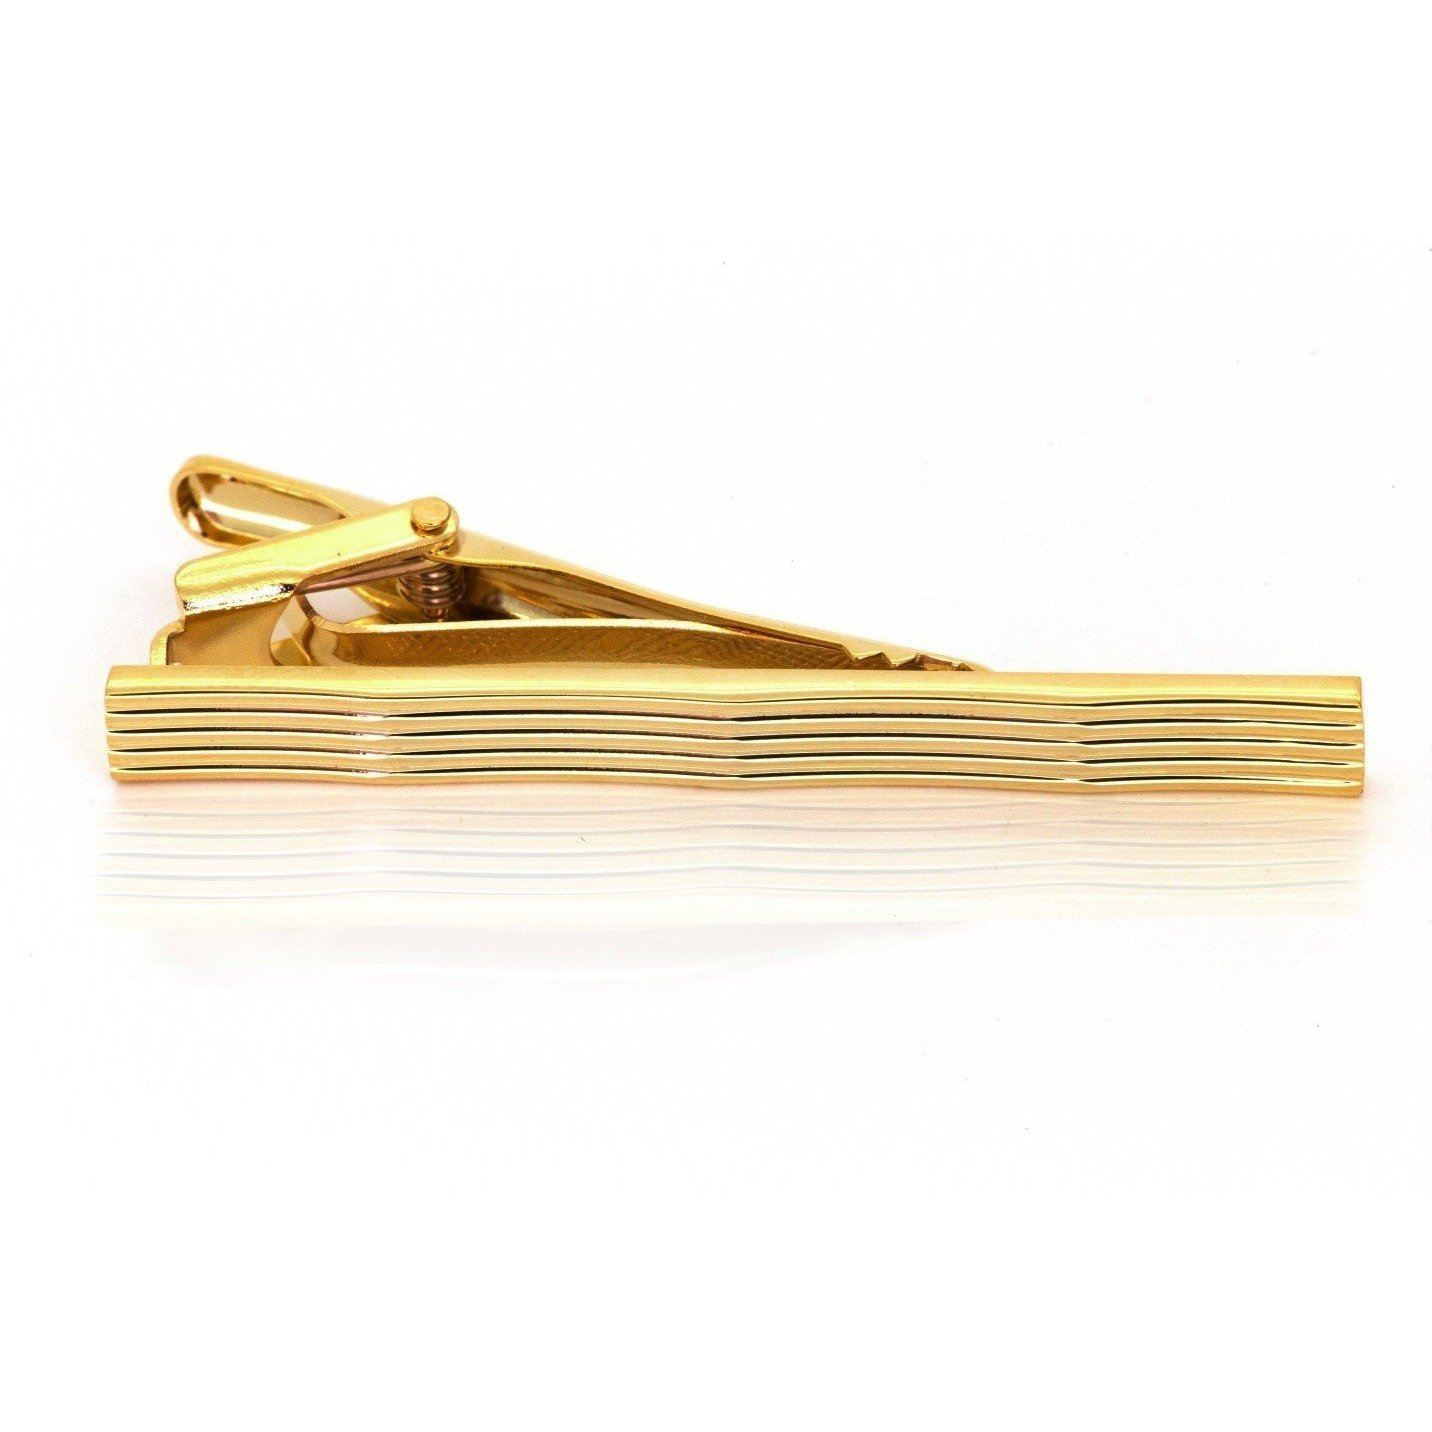 Gold Lines with Waves Tie Clip, Tie Bars, Cuffed.com.au, TC1130, $25.00